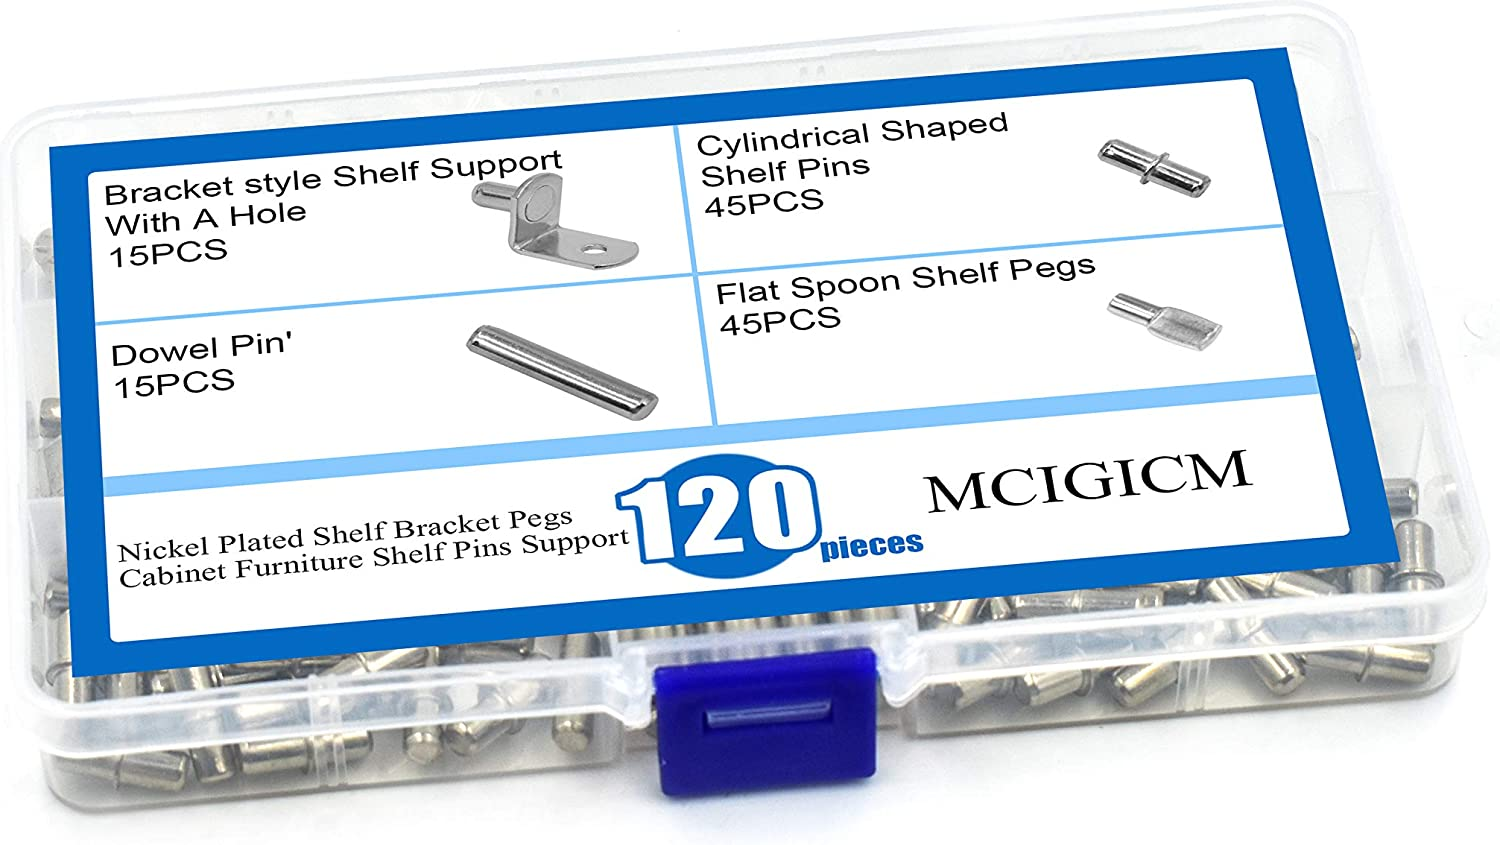 Bracket Style Flat Spoon Dowel Cylindrical Shaped Shelf Pins Pegs Supports for for Shelf Holes on Cabinets MCIGICM 120PCS Shelf Pin Pegs Support Kits